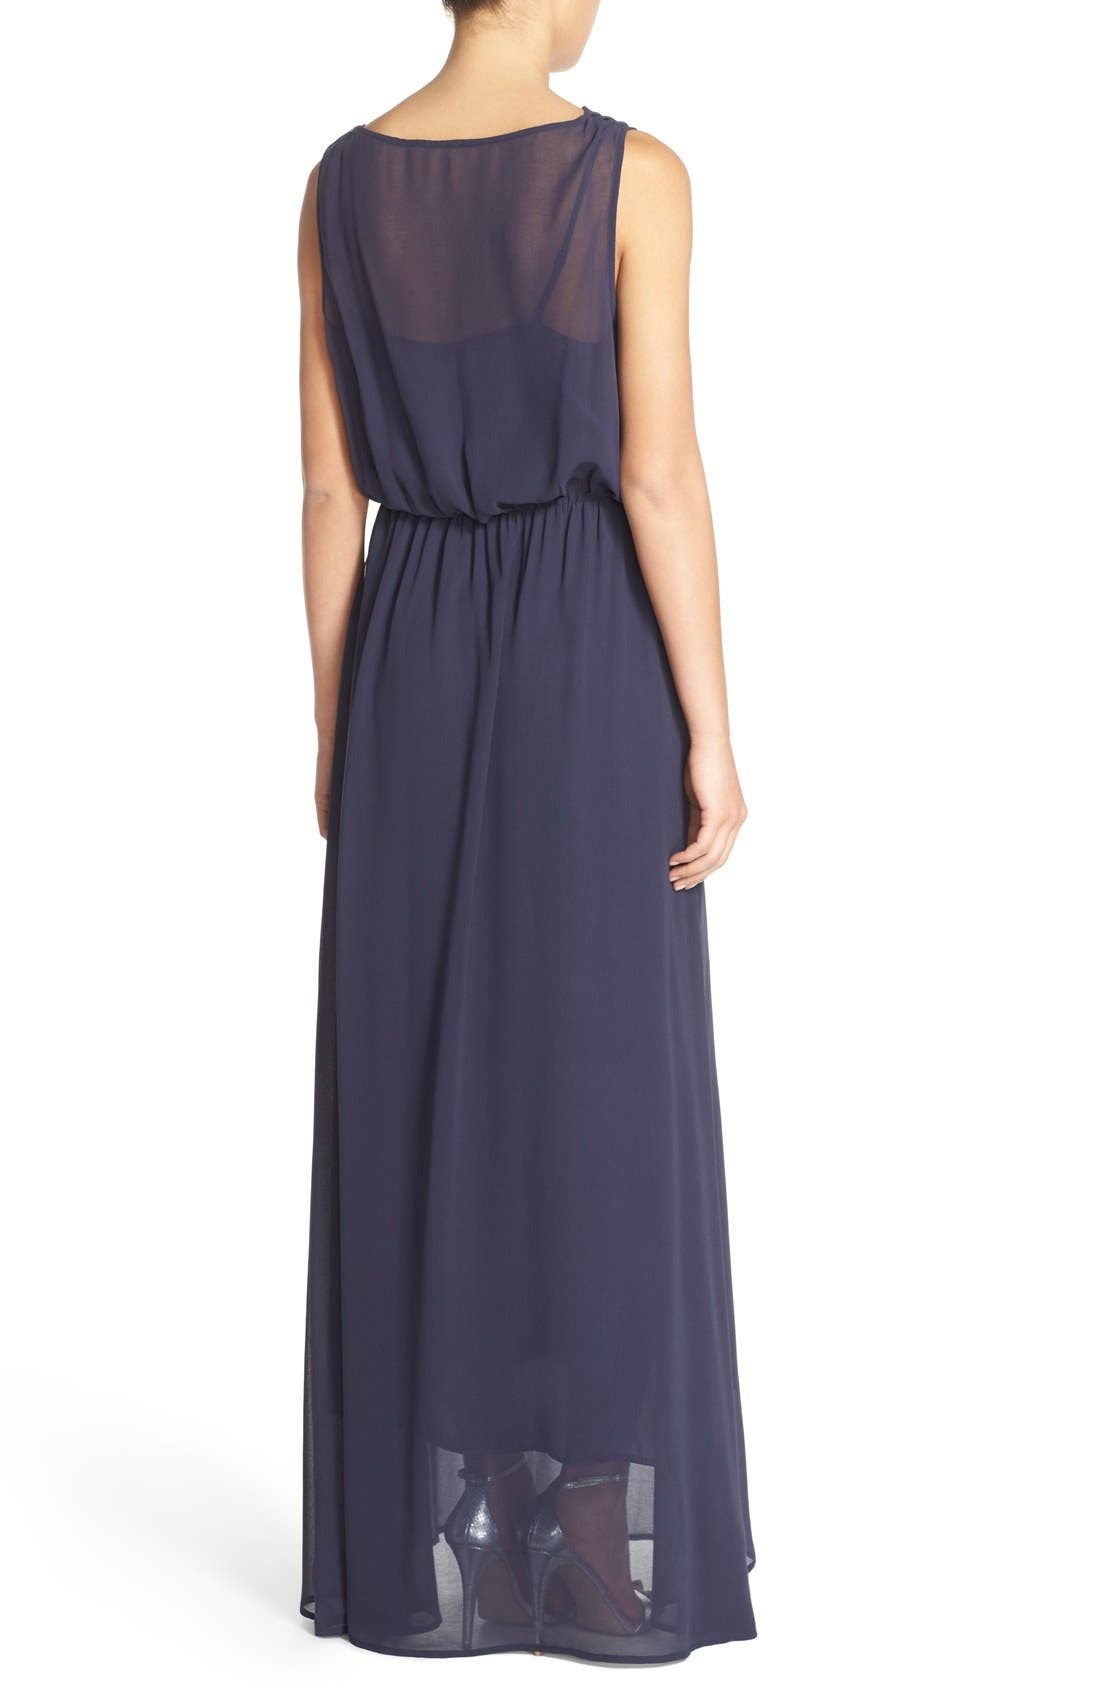 by Lauren Conrad 'Springfield' Cowl Neck Chiffon Gown,                             Alternate thumbnail 2, color,                             410